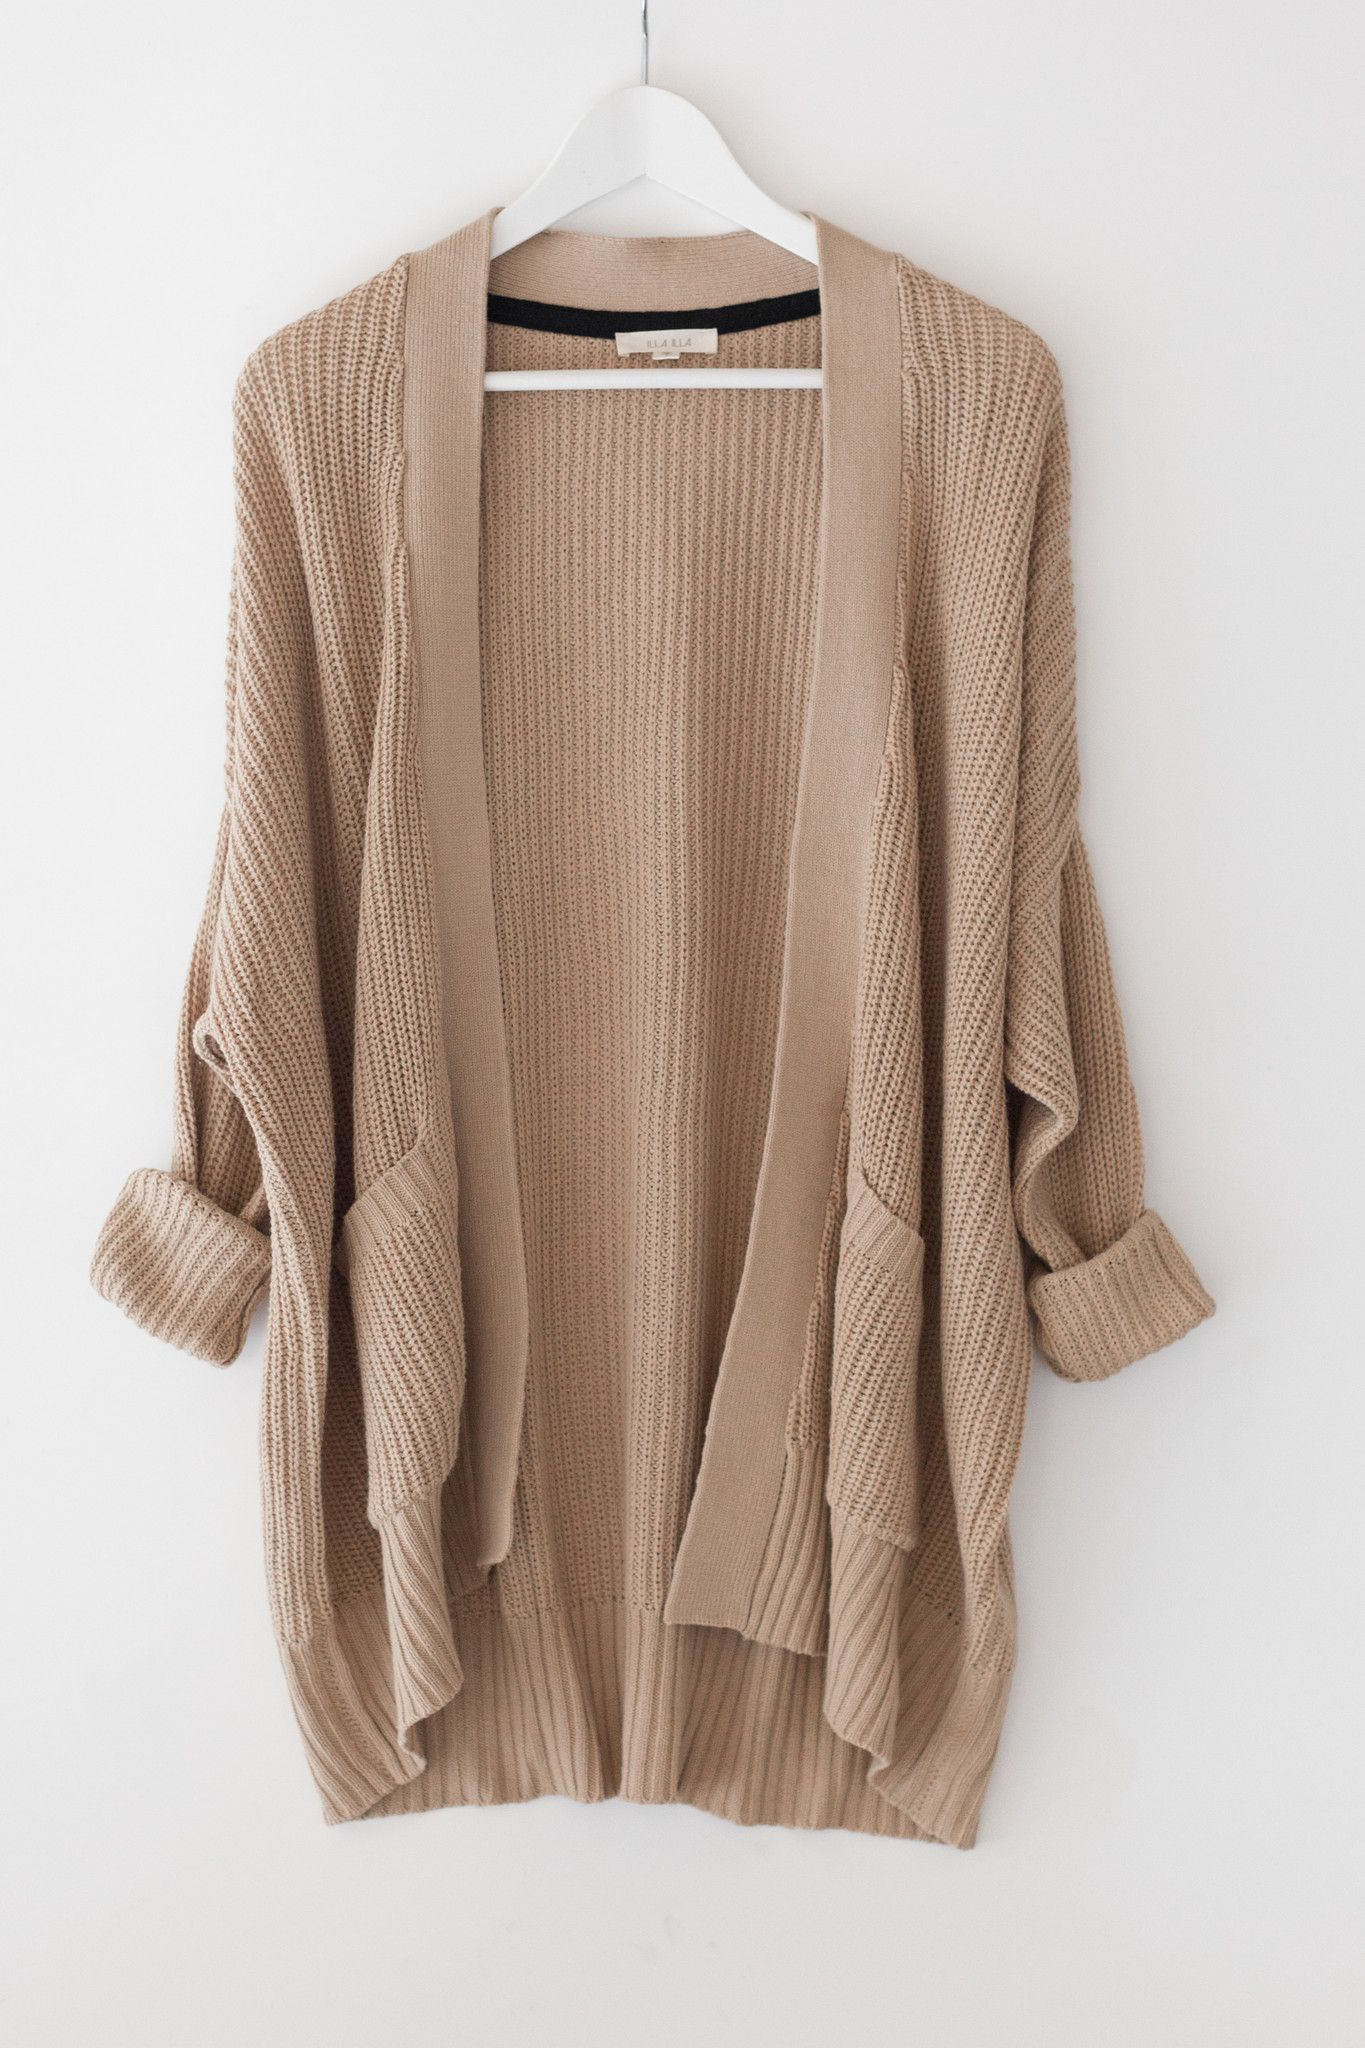 Tan chunky knitted cardigan with an open front - Large patched ...